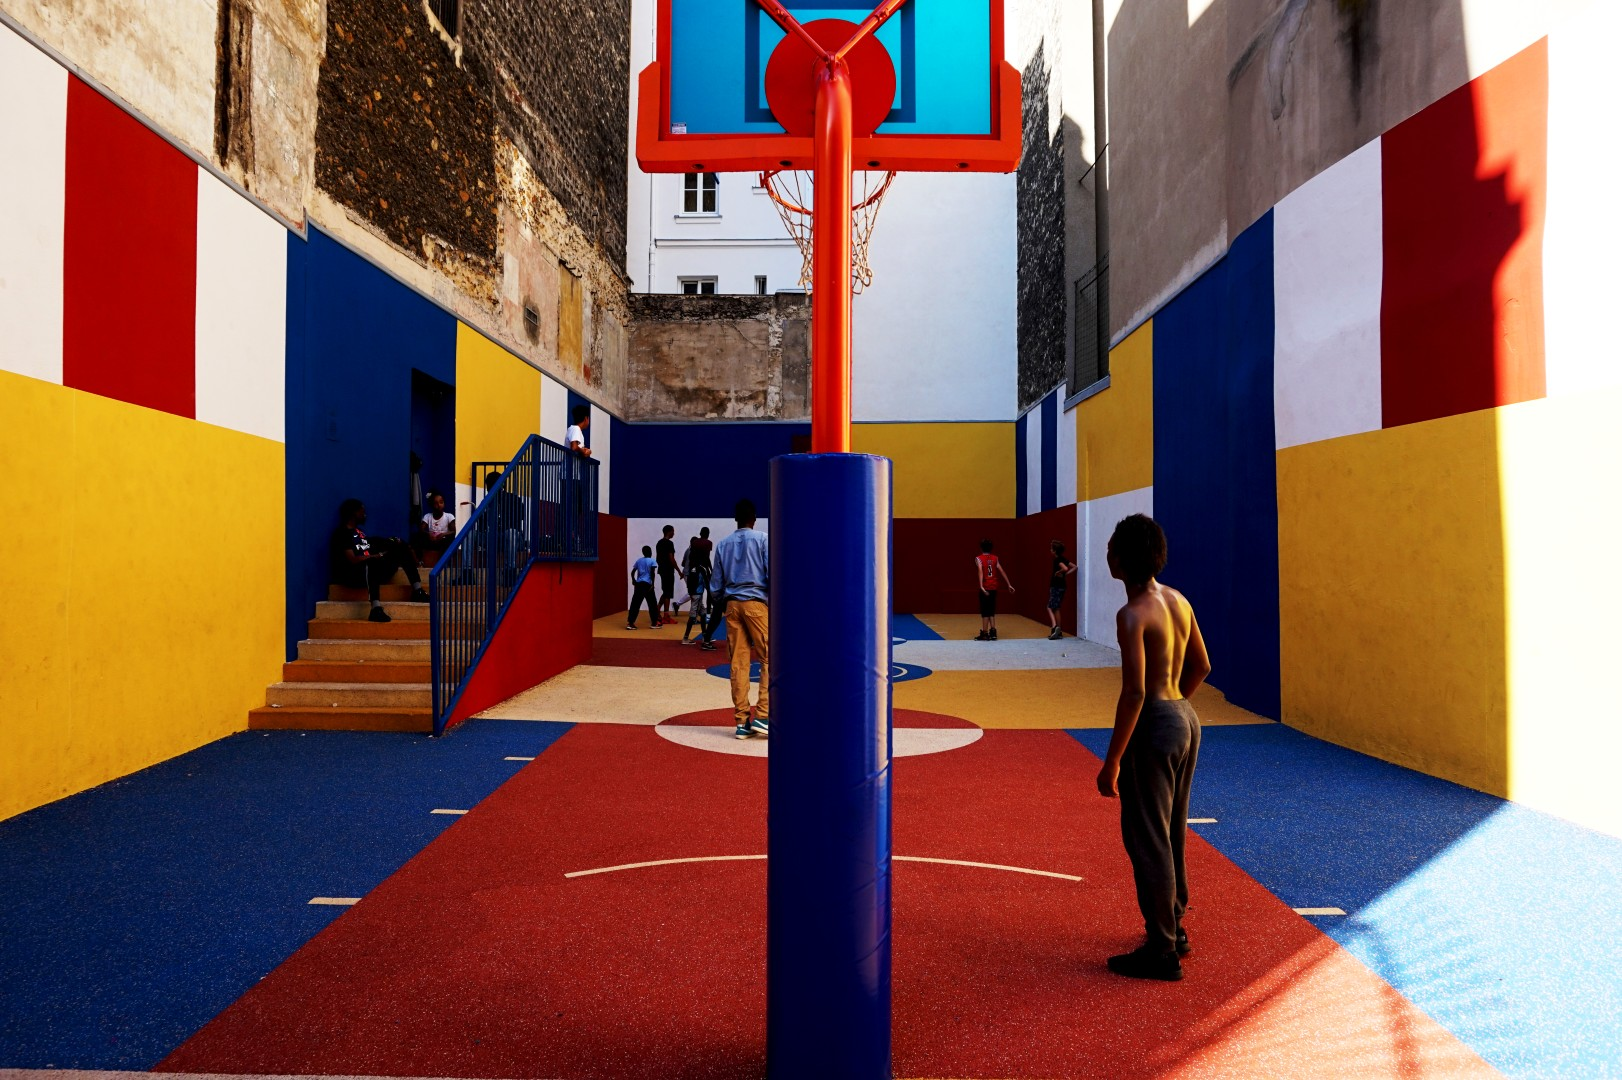 Terrain de basket, Paris 9e